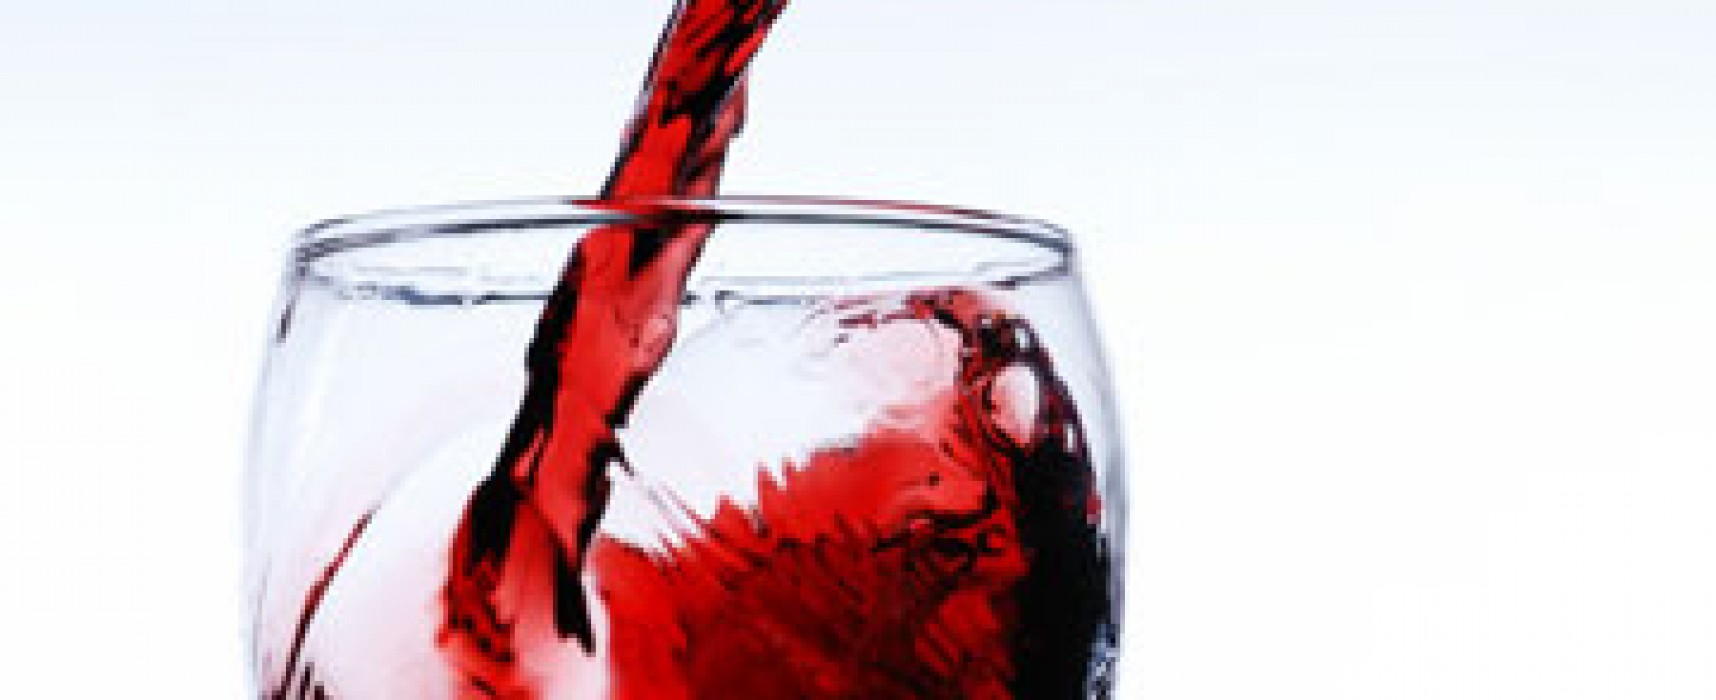 All about Red wine